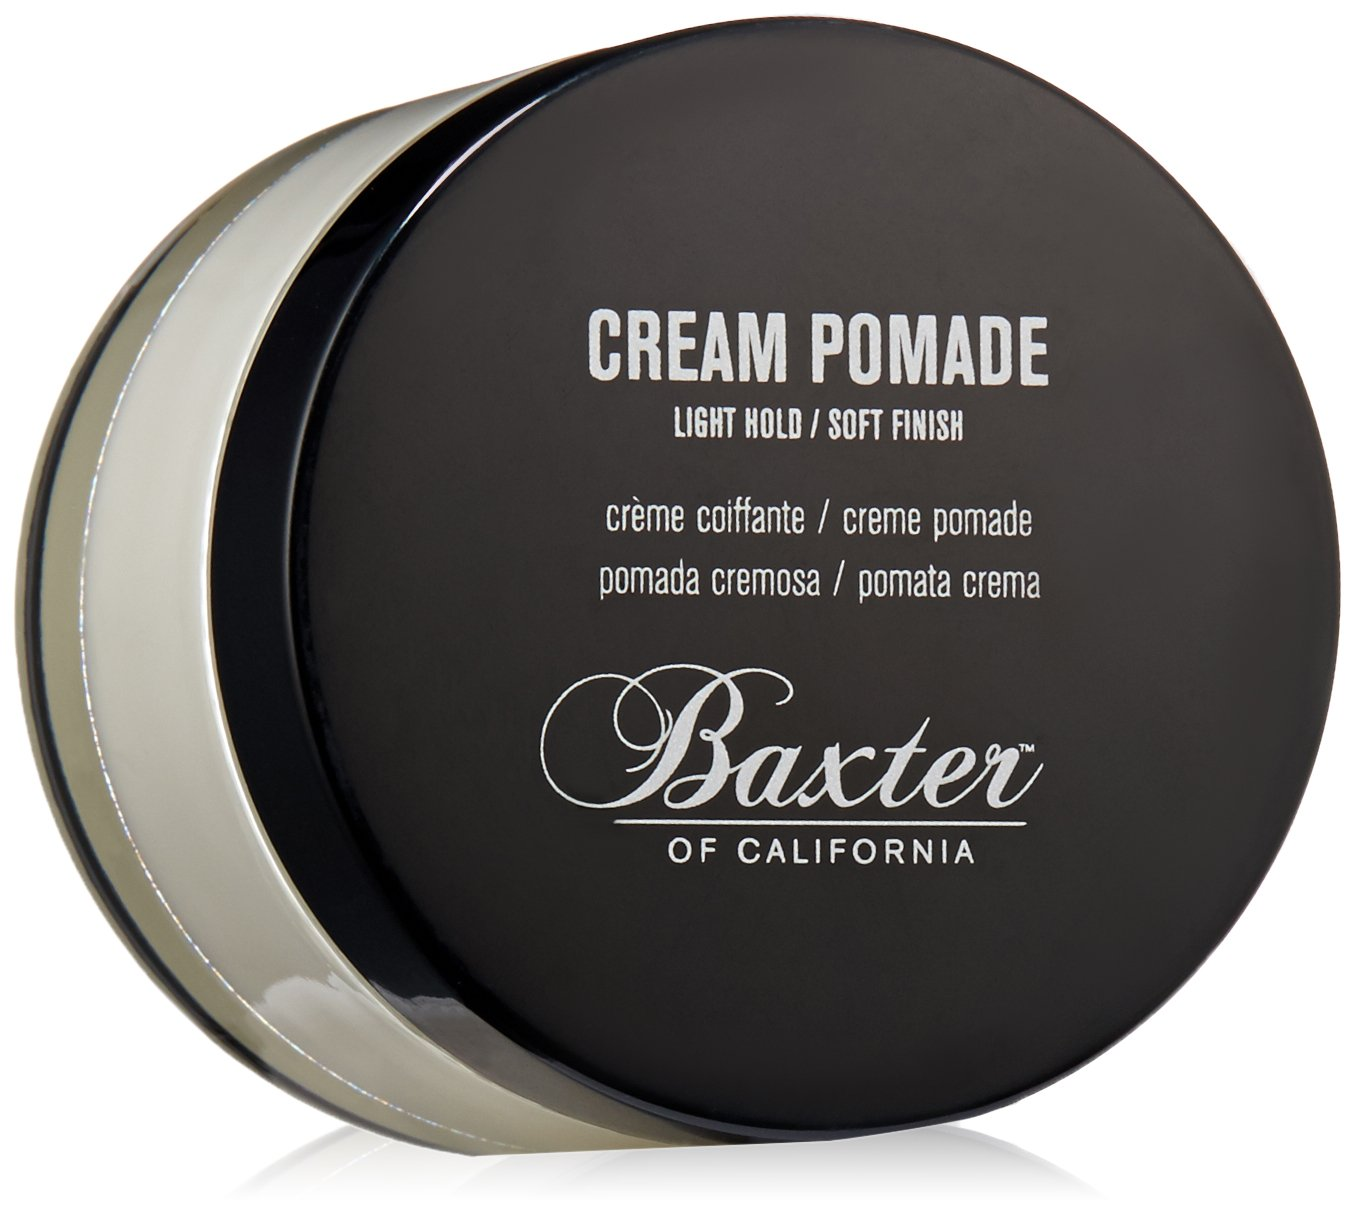 Baxter of California Cream Pomade, 2 fl. oz. by Baxter of California (Image #1)